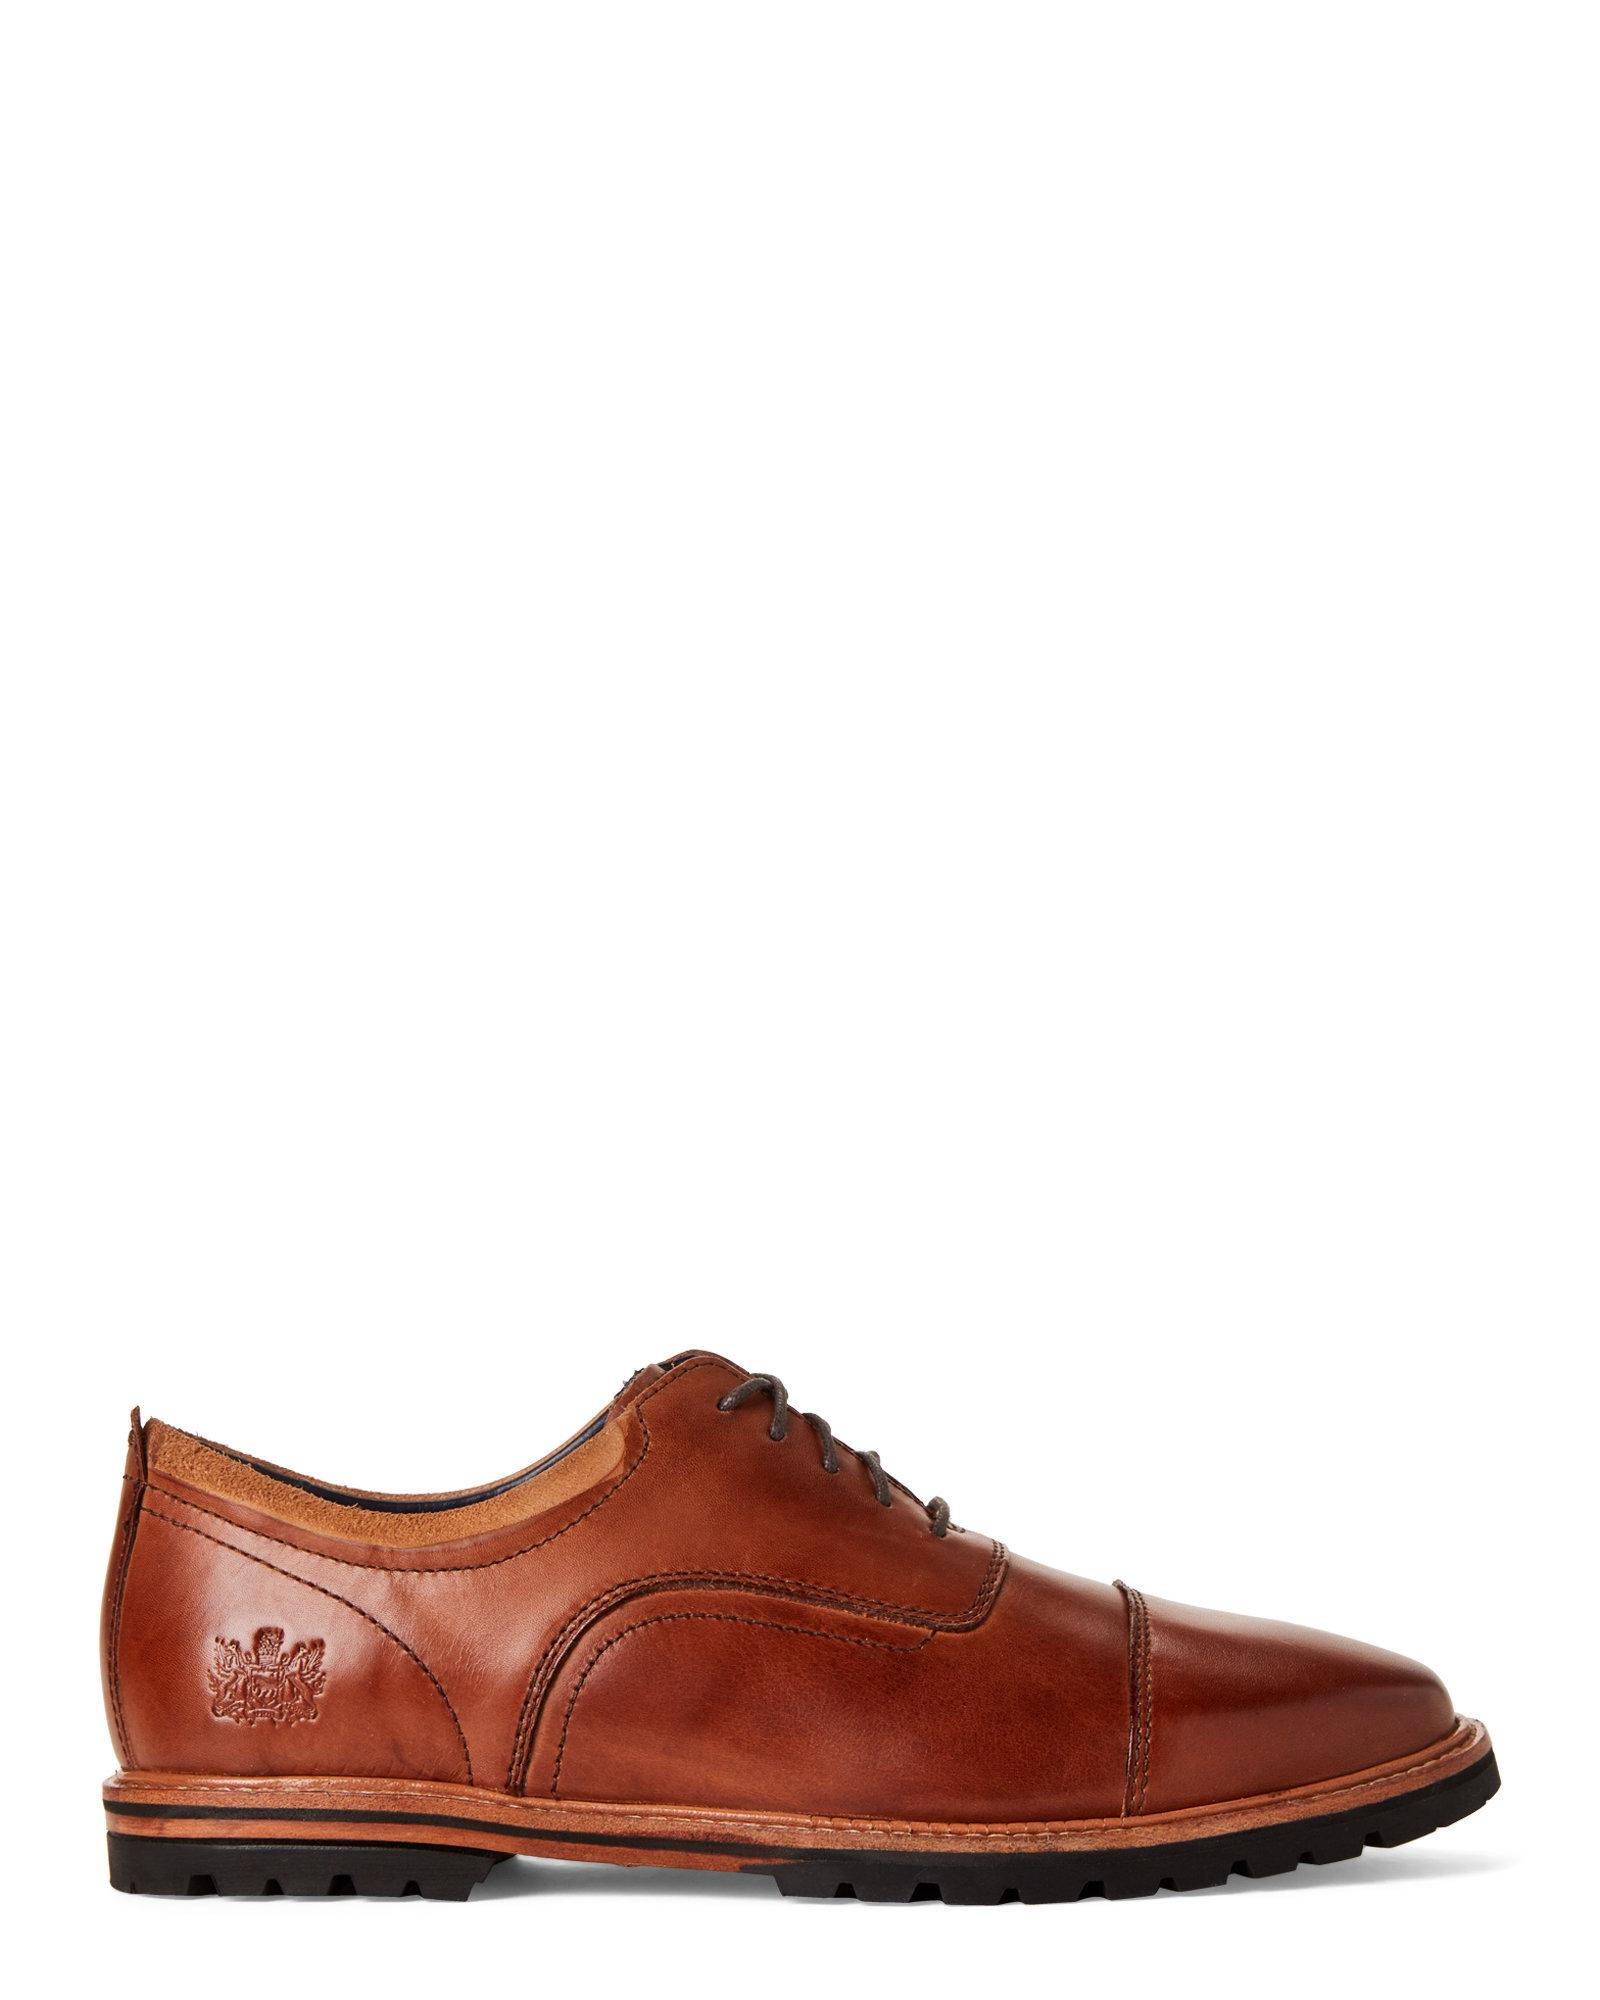 aa55a65dfa1 Lyst - Cole Haan Mesquite Handstain Raymond Grand Leather Oxfords in Brown  for Men